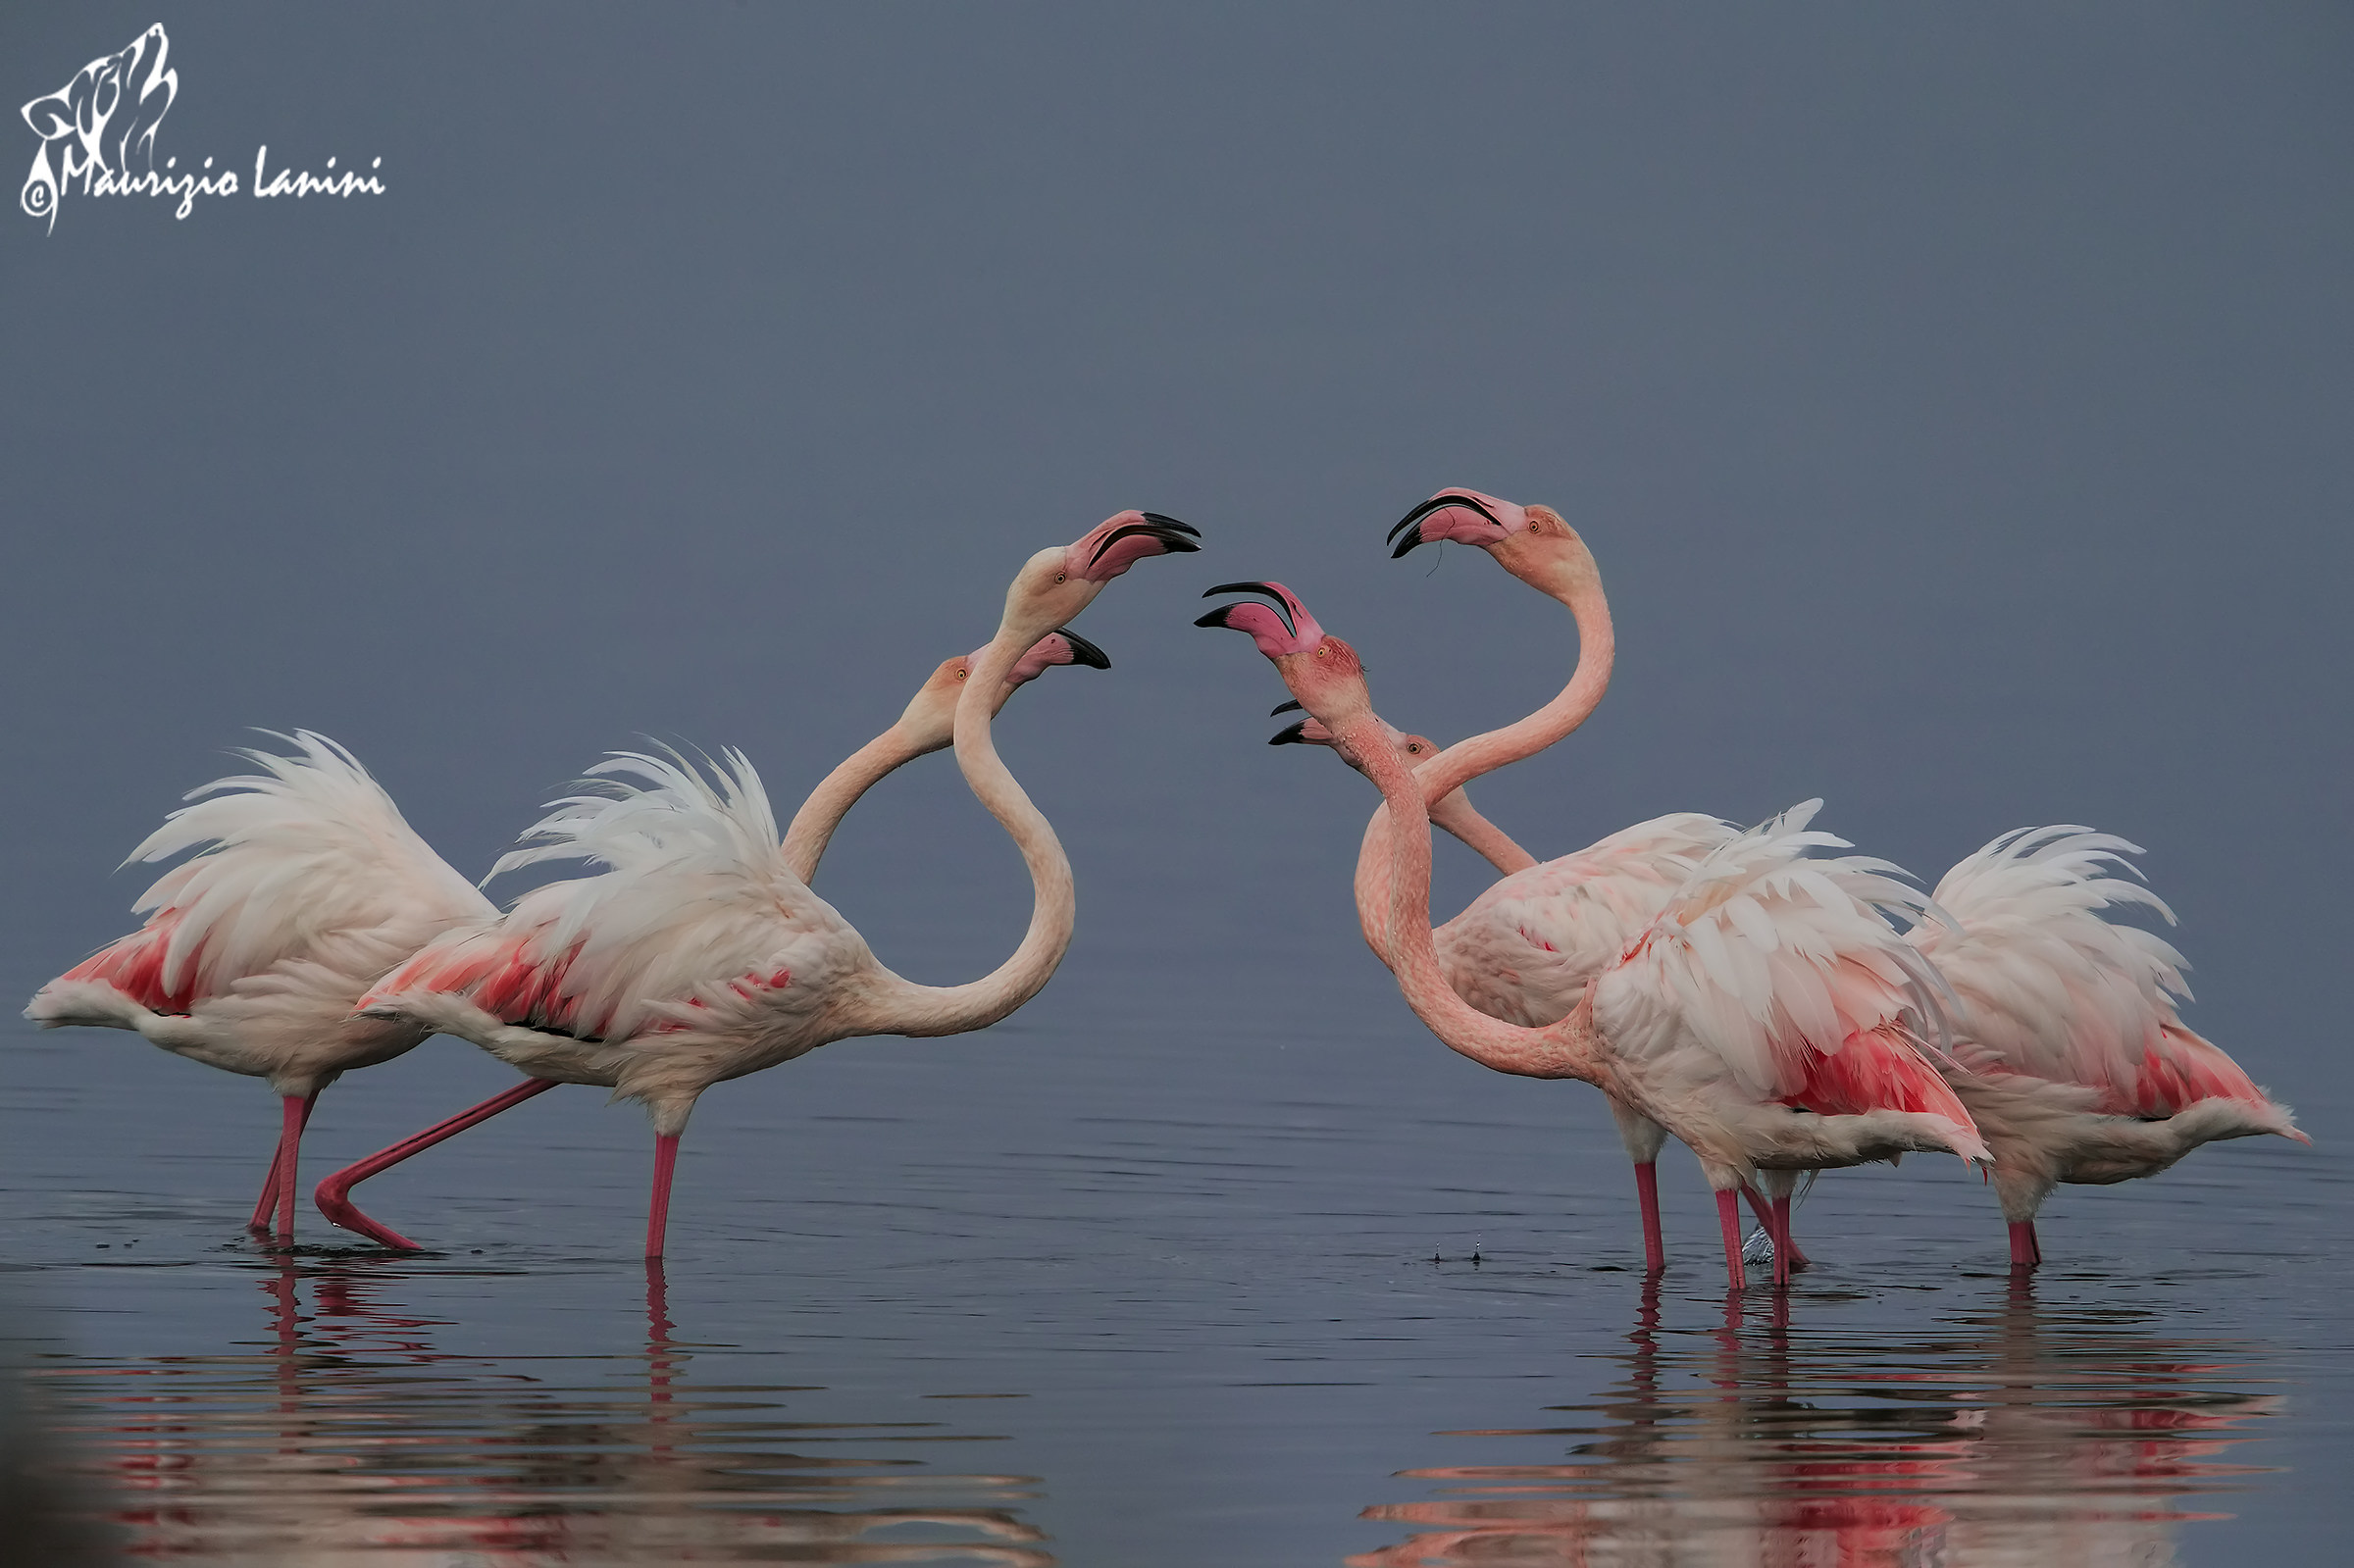 Disputes between flamingos (hd)...